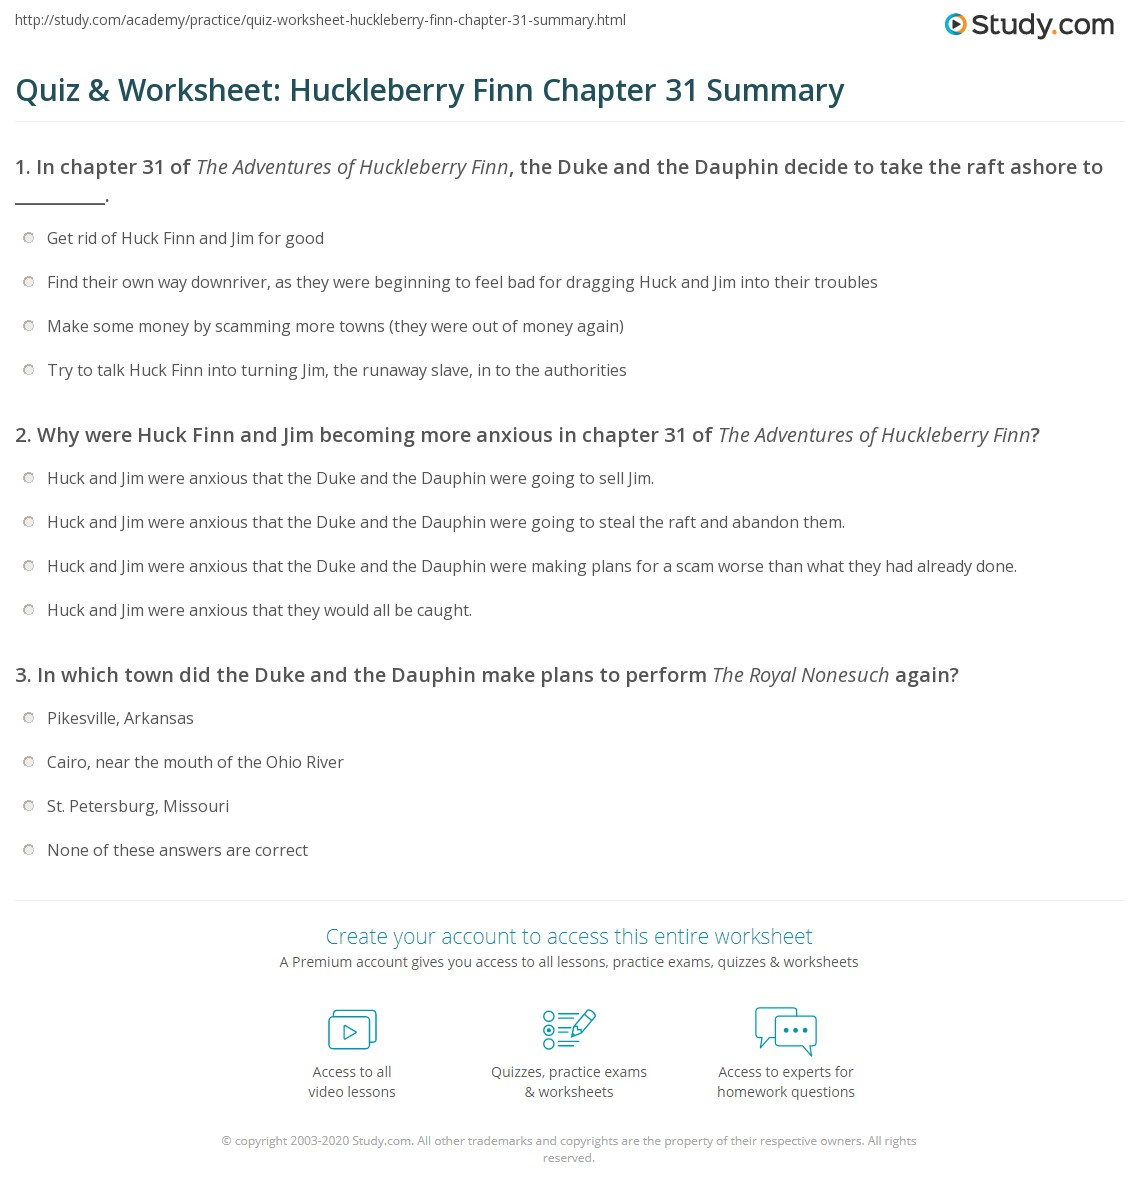 Quiz  Worksheet Huckleberry Finn Chapter  Summary  Studycom Print The Adventures Of Huckleberry Finn Chapter  Summary Worksheet Student Life Essay In English also Academic Writing Assistance Agencies  Samples Of Essay Writing In English